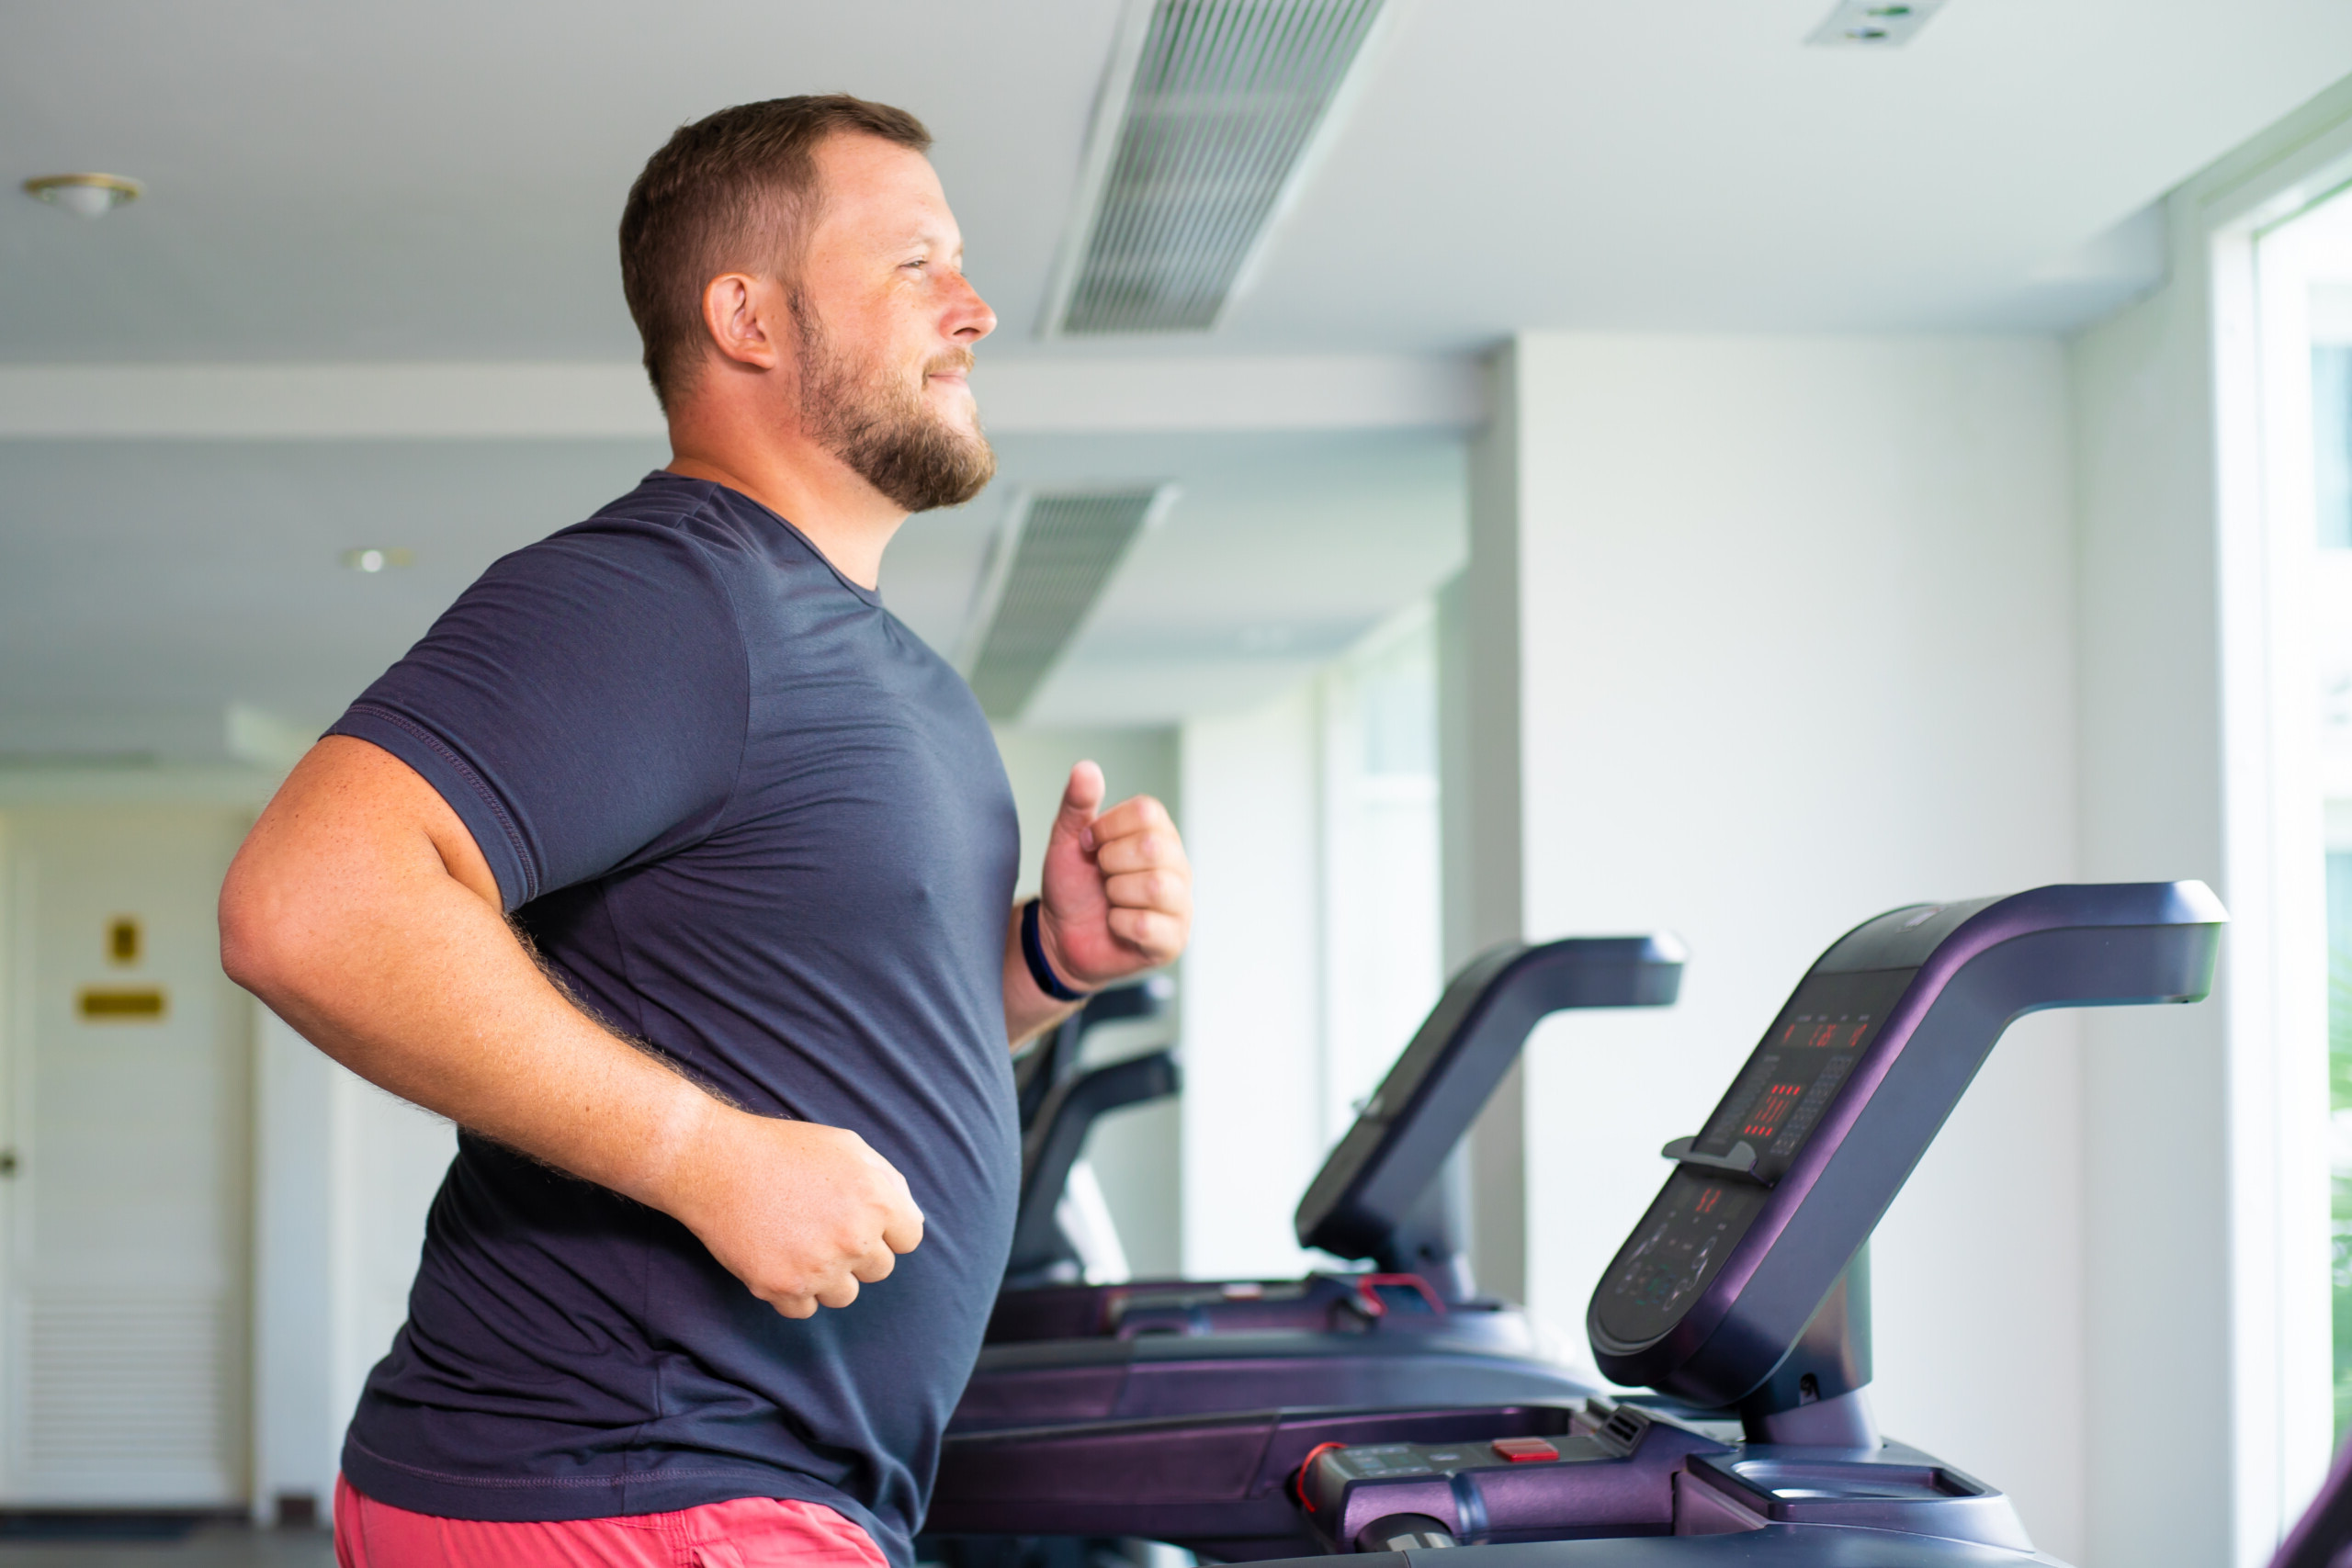 Are You More Likely to Survive Heart Attack if You Exercise?